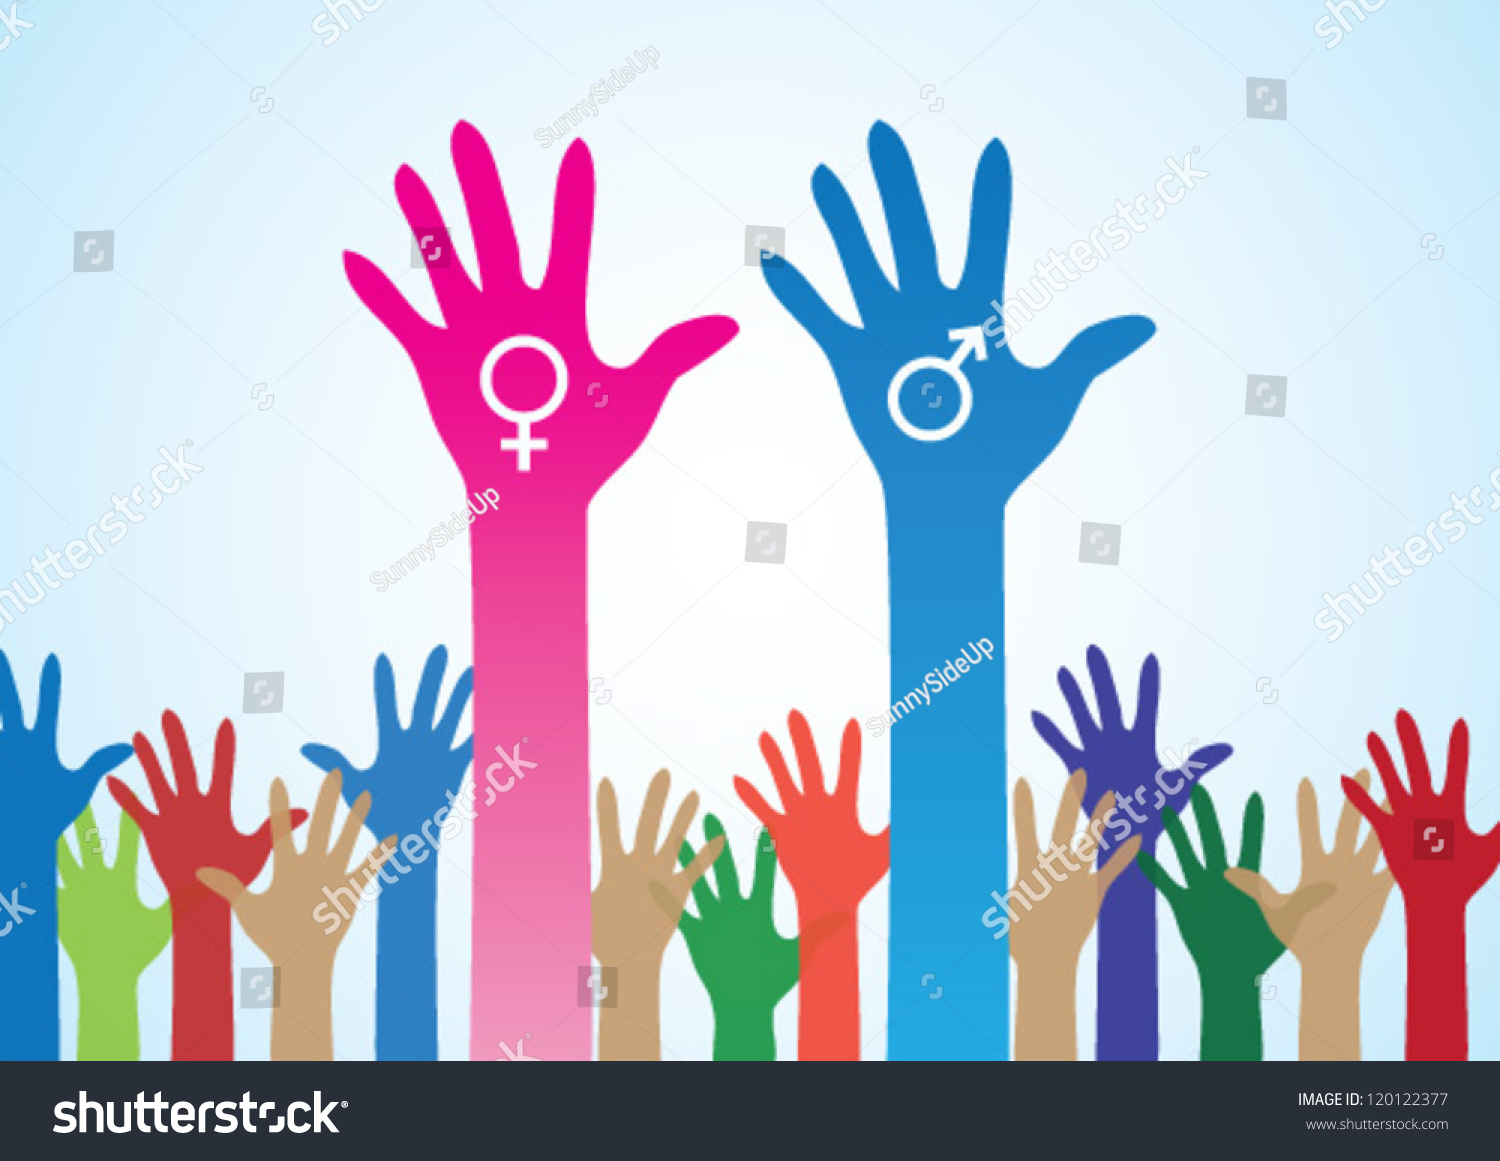 concepts of equality diversity and rights The concept of equality, diversity and rights in relation to health and social care equality means creating a fair society with equal opportunity and no.